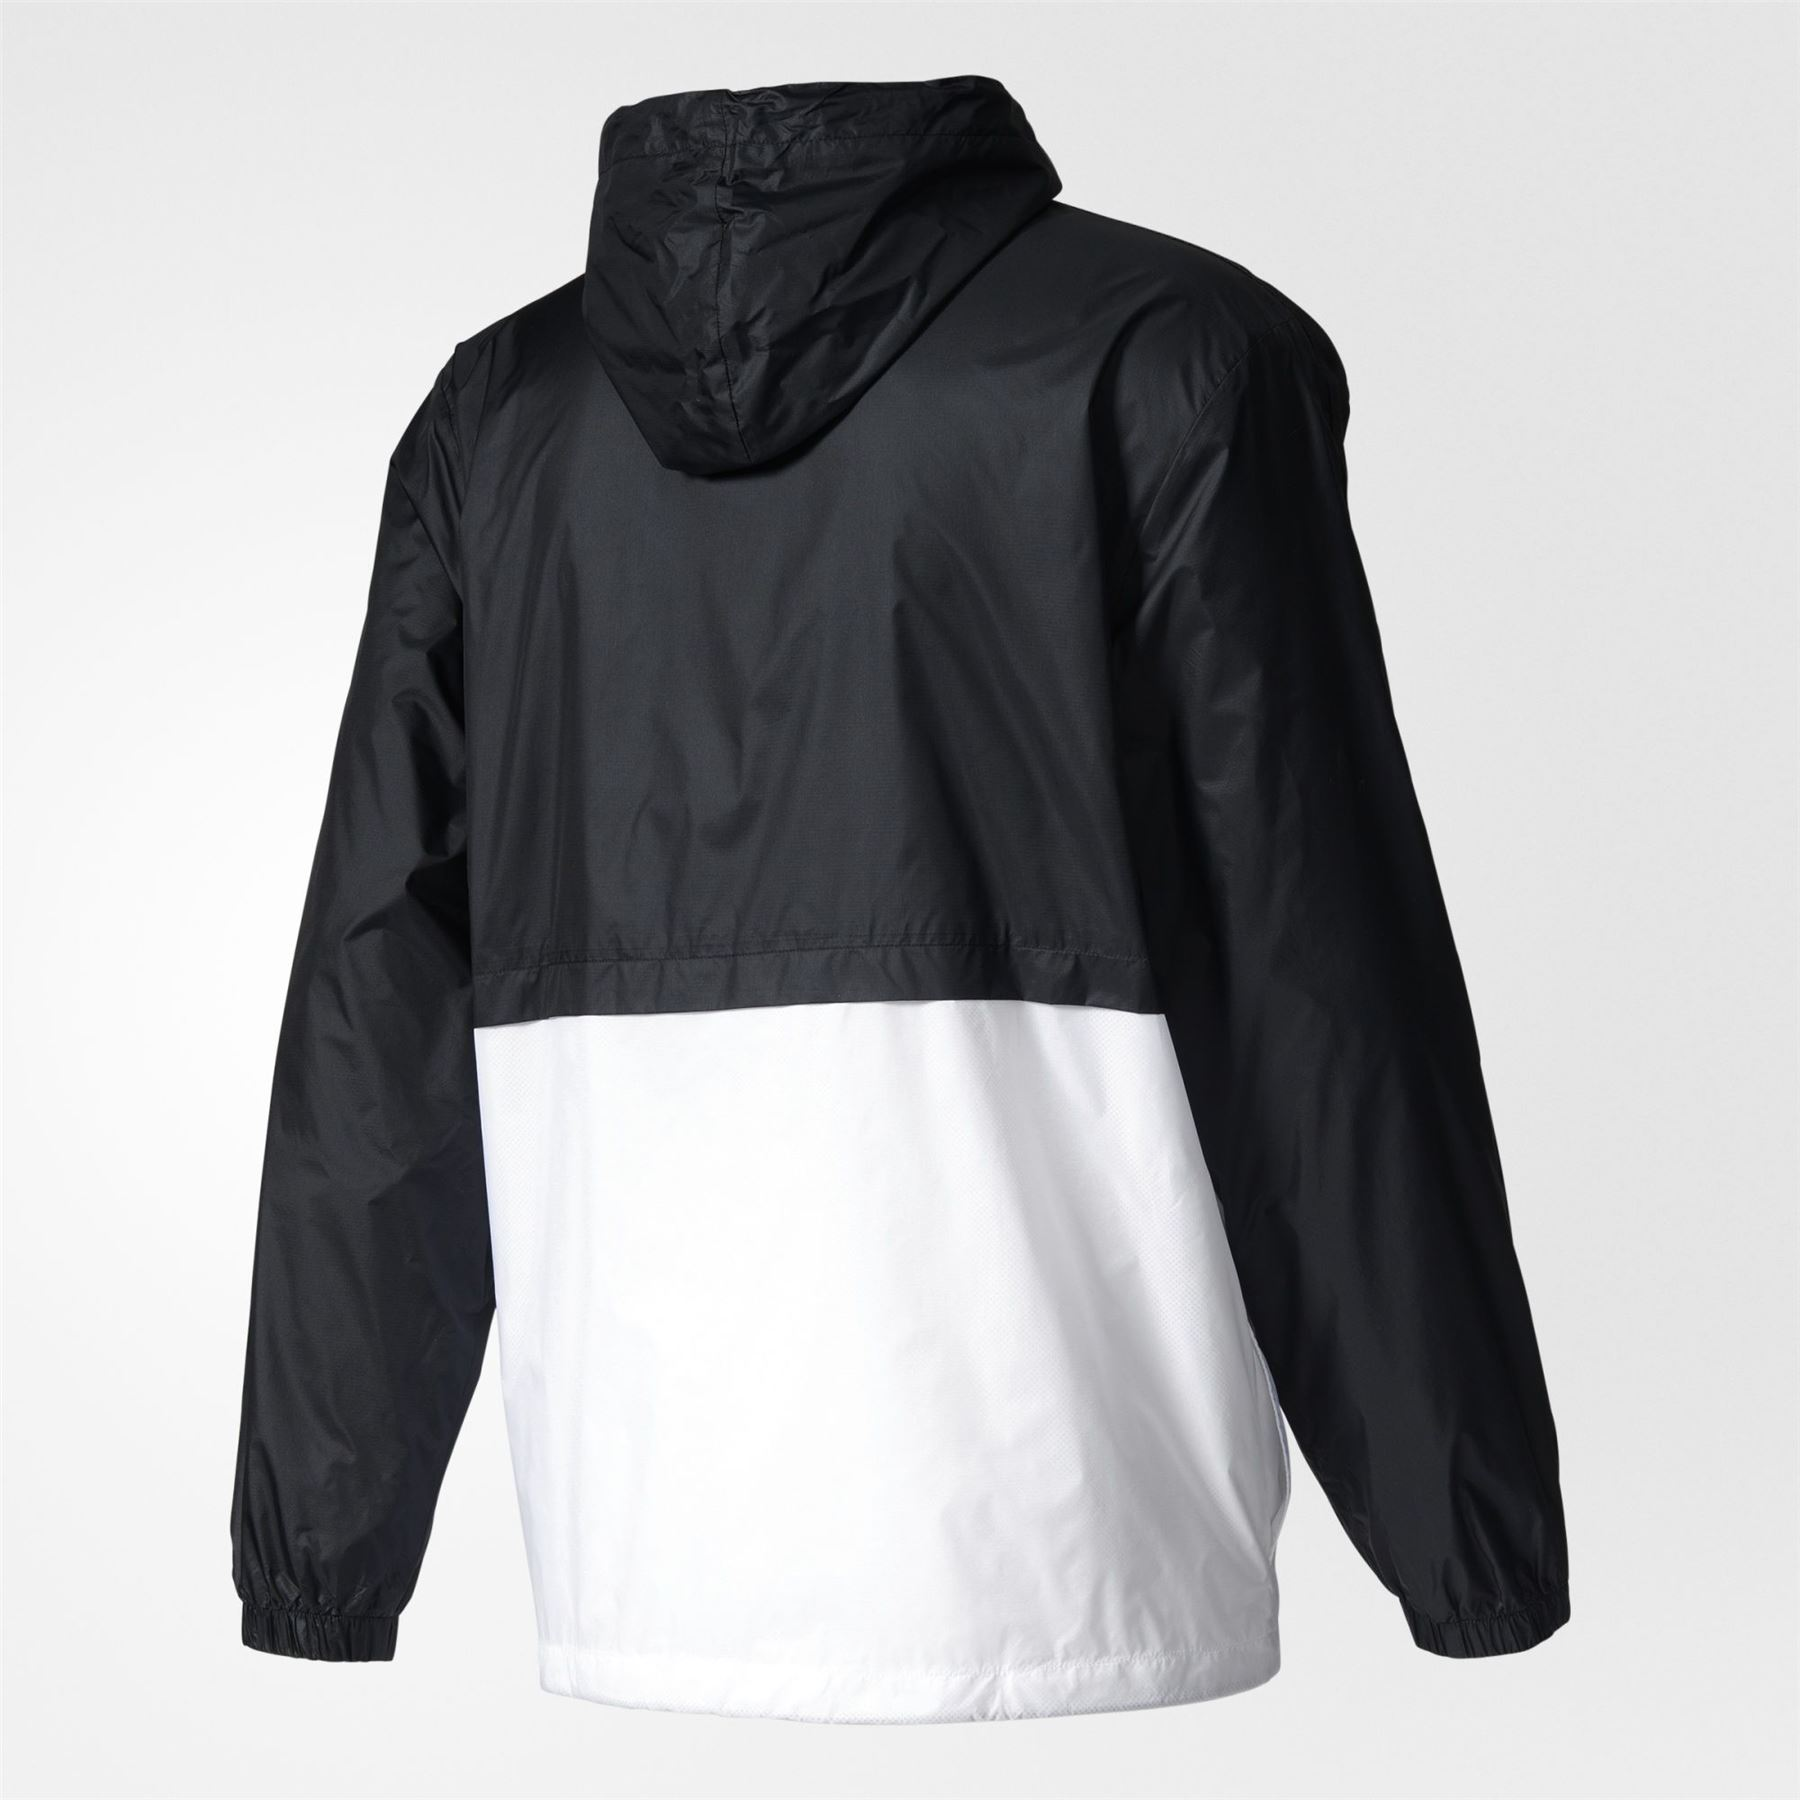 ae83606cd adidas ORIGINALS BERLIN WINDBREAKER BLACK WHITE MEN'S RETRO VINTAGE JACKET  COAT